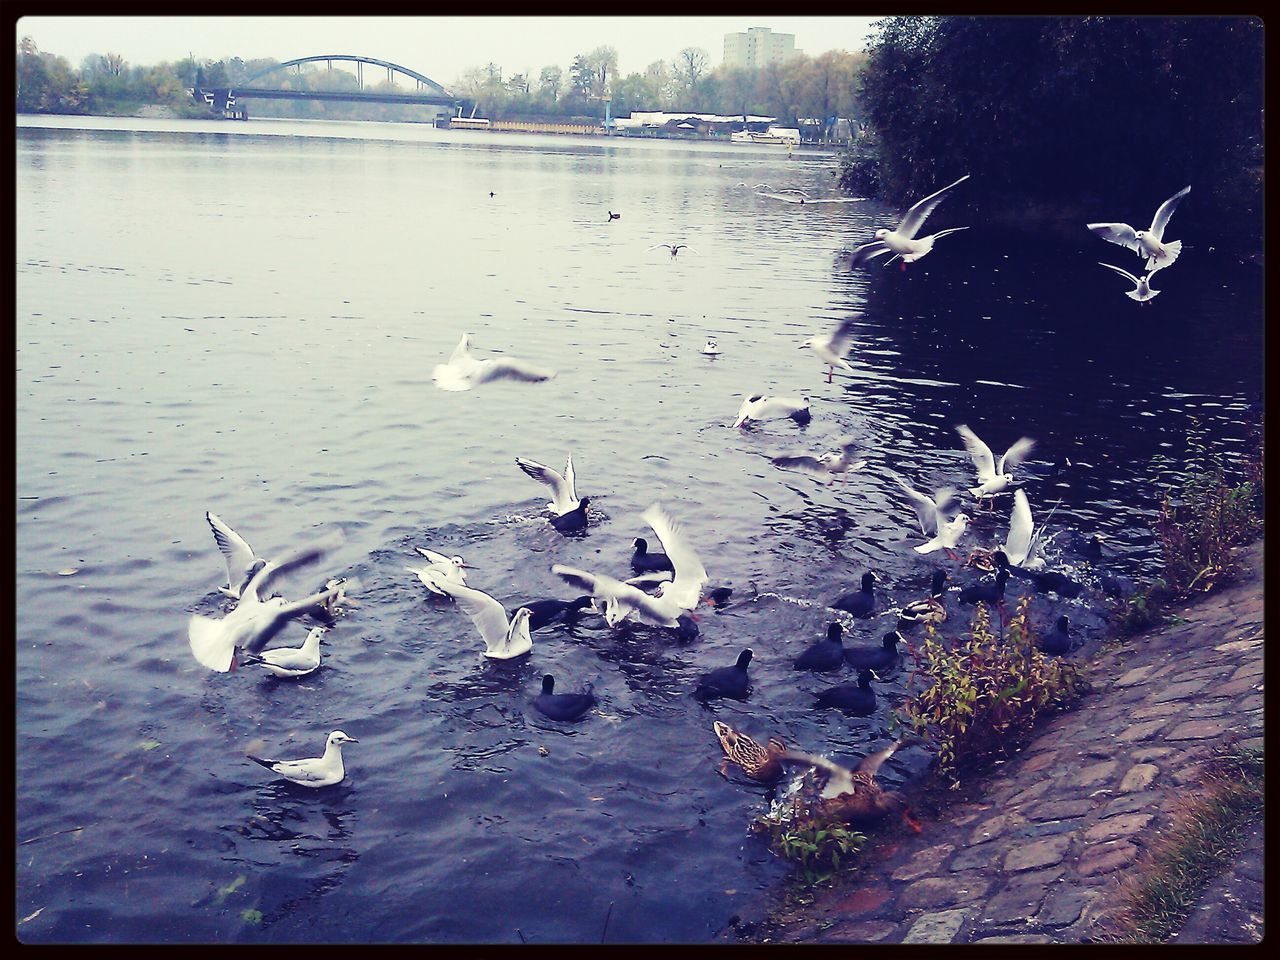 Seagulls And Ducks On River